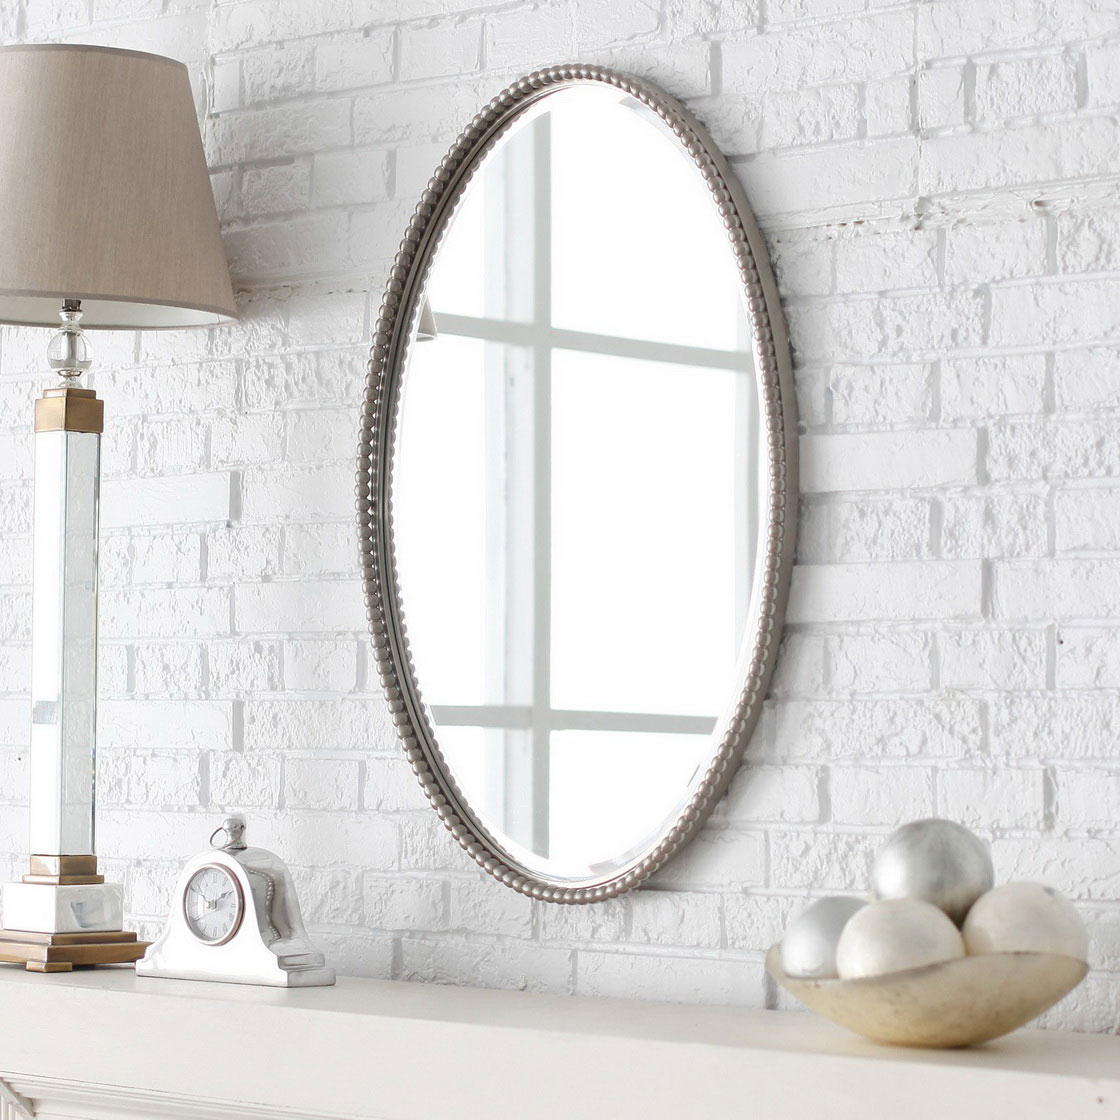 Ansprechend Large Wall Mirrors Nz Square For Full La Bathroom Round Inside Well Known Hanging Wall Mirrors For Bathroom (Gallery 17 of 20)